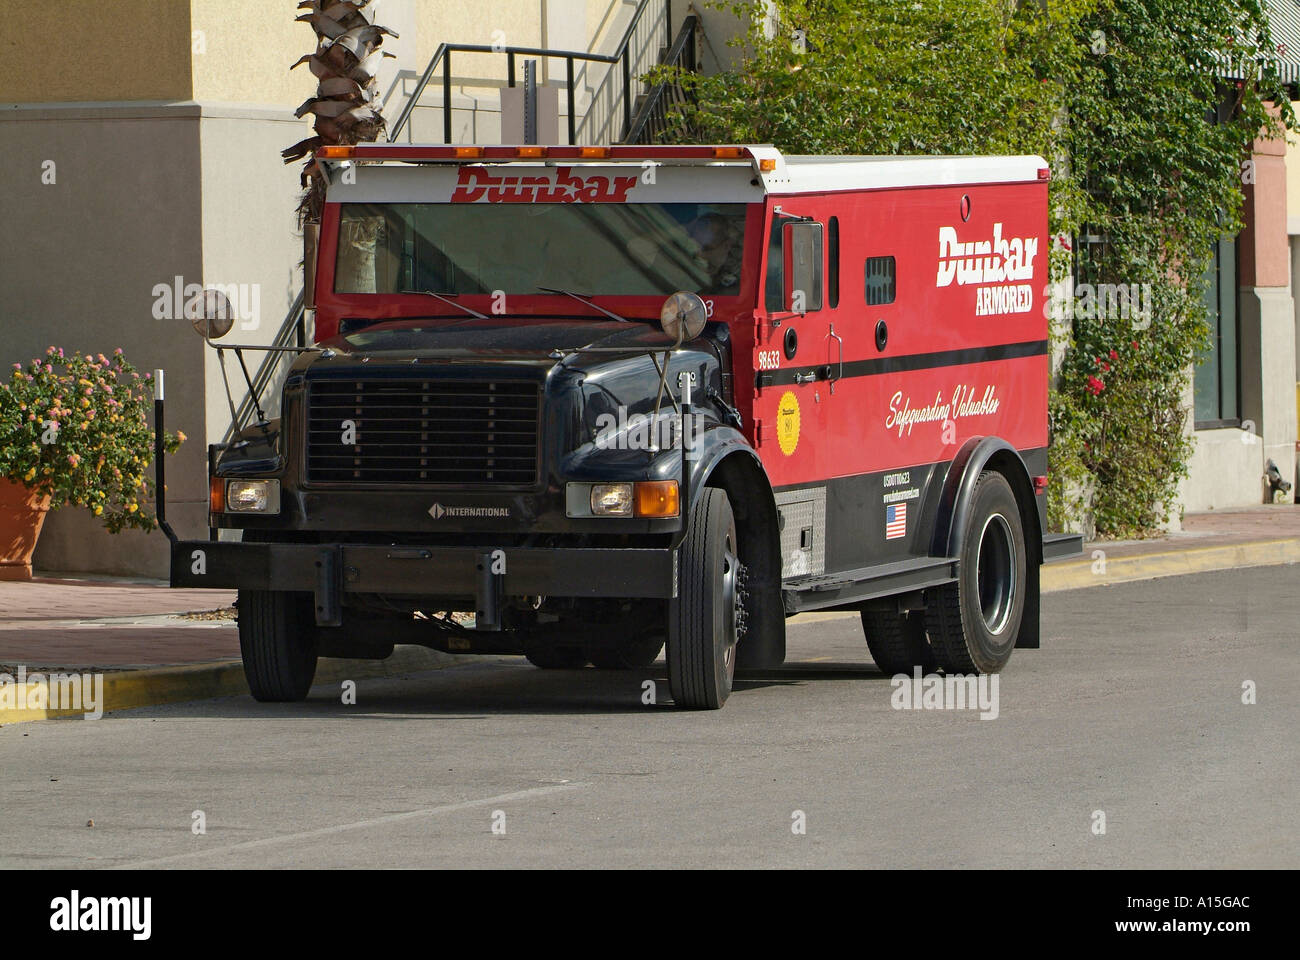 Armored Truck collects cash money from businesses for deposit into ...